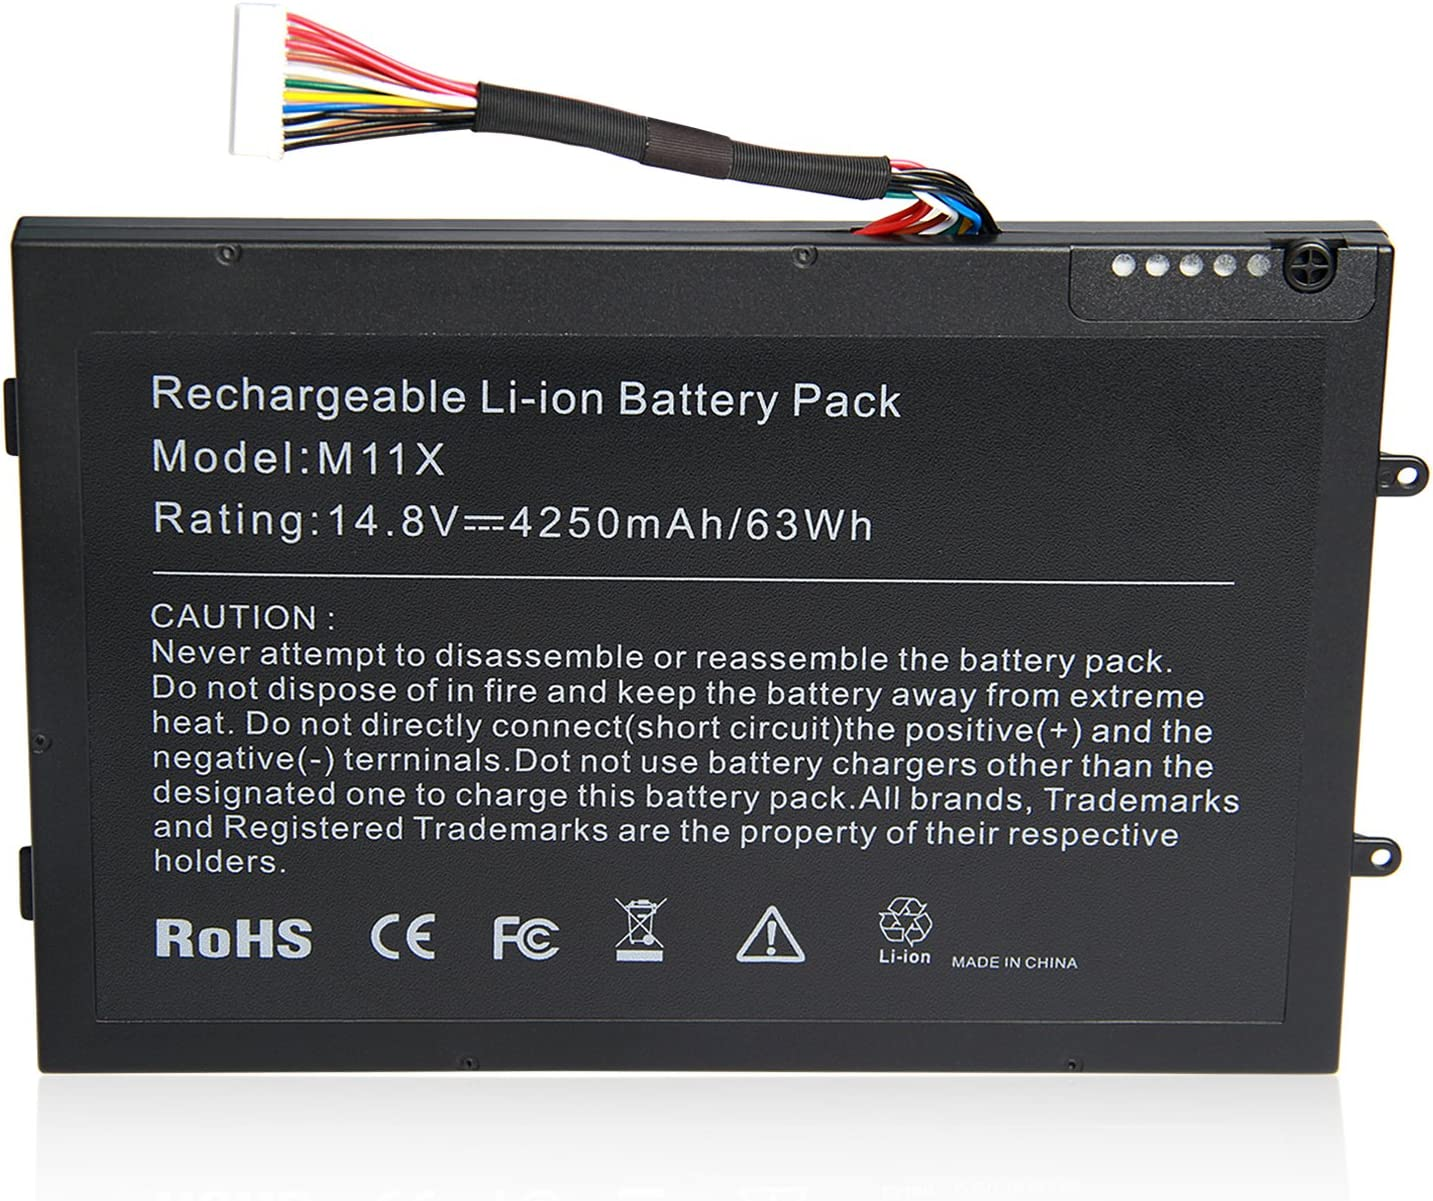 ARyee M11X R3 M14X R2 Battery for Dell Alienware New Laptop Replacement Fit Alienware M11x R2 R3 M14X R2 P18G P06T 312-0984 8P6X6 999T2086F DKK25 KR08P6X6[14.8 63Wh]